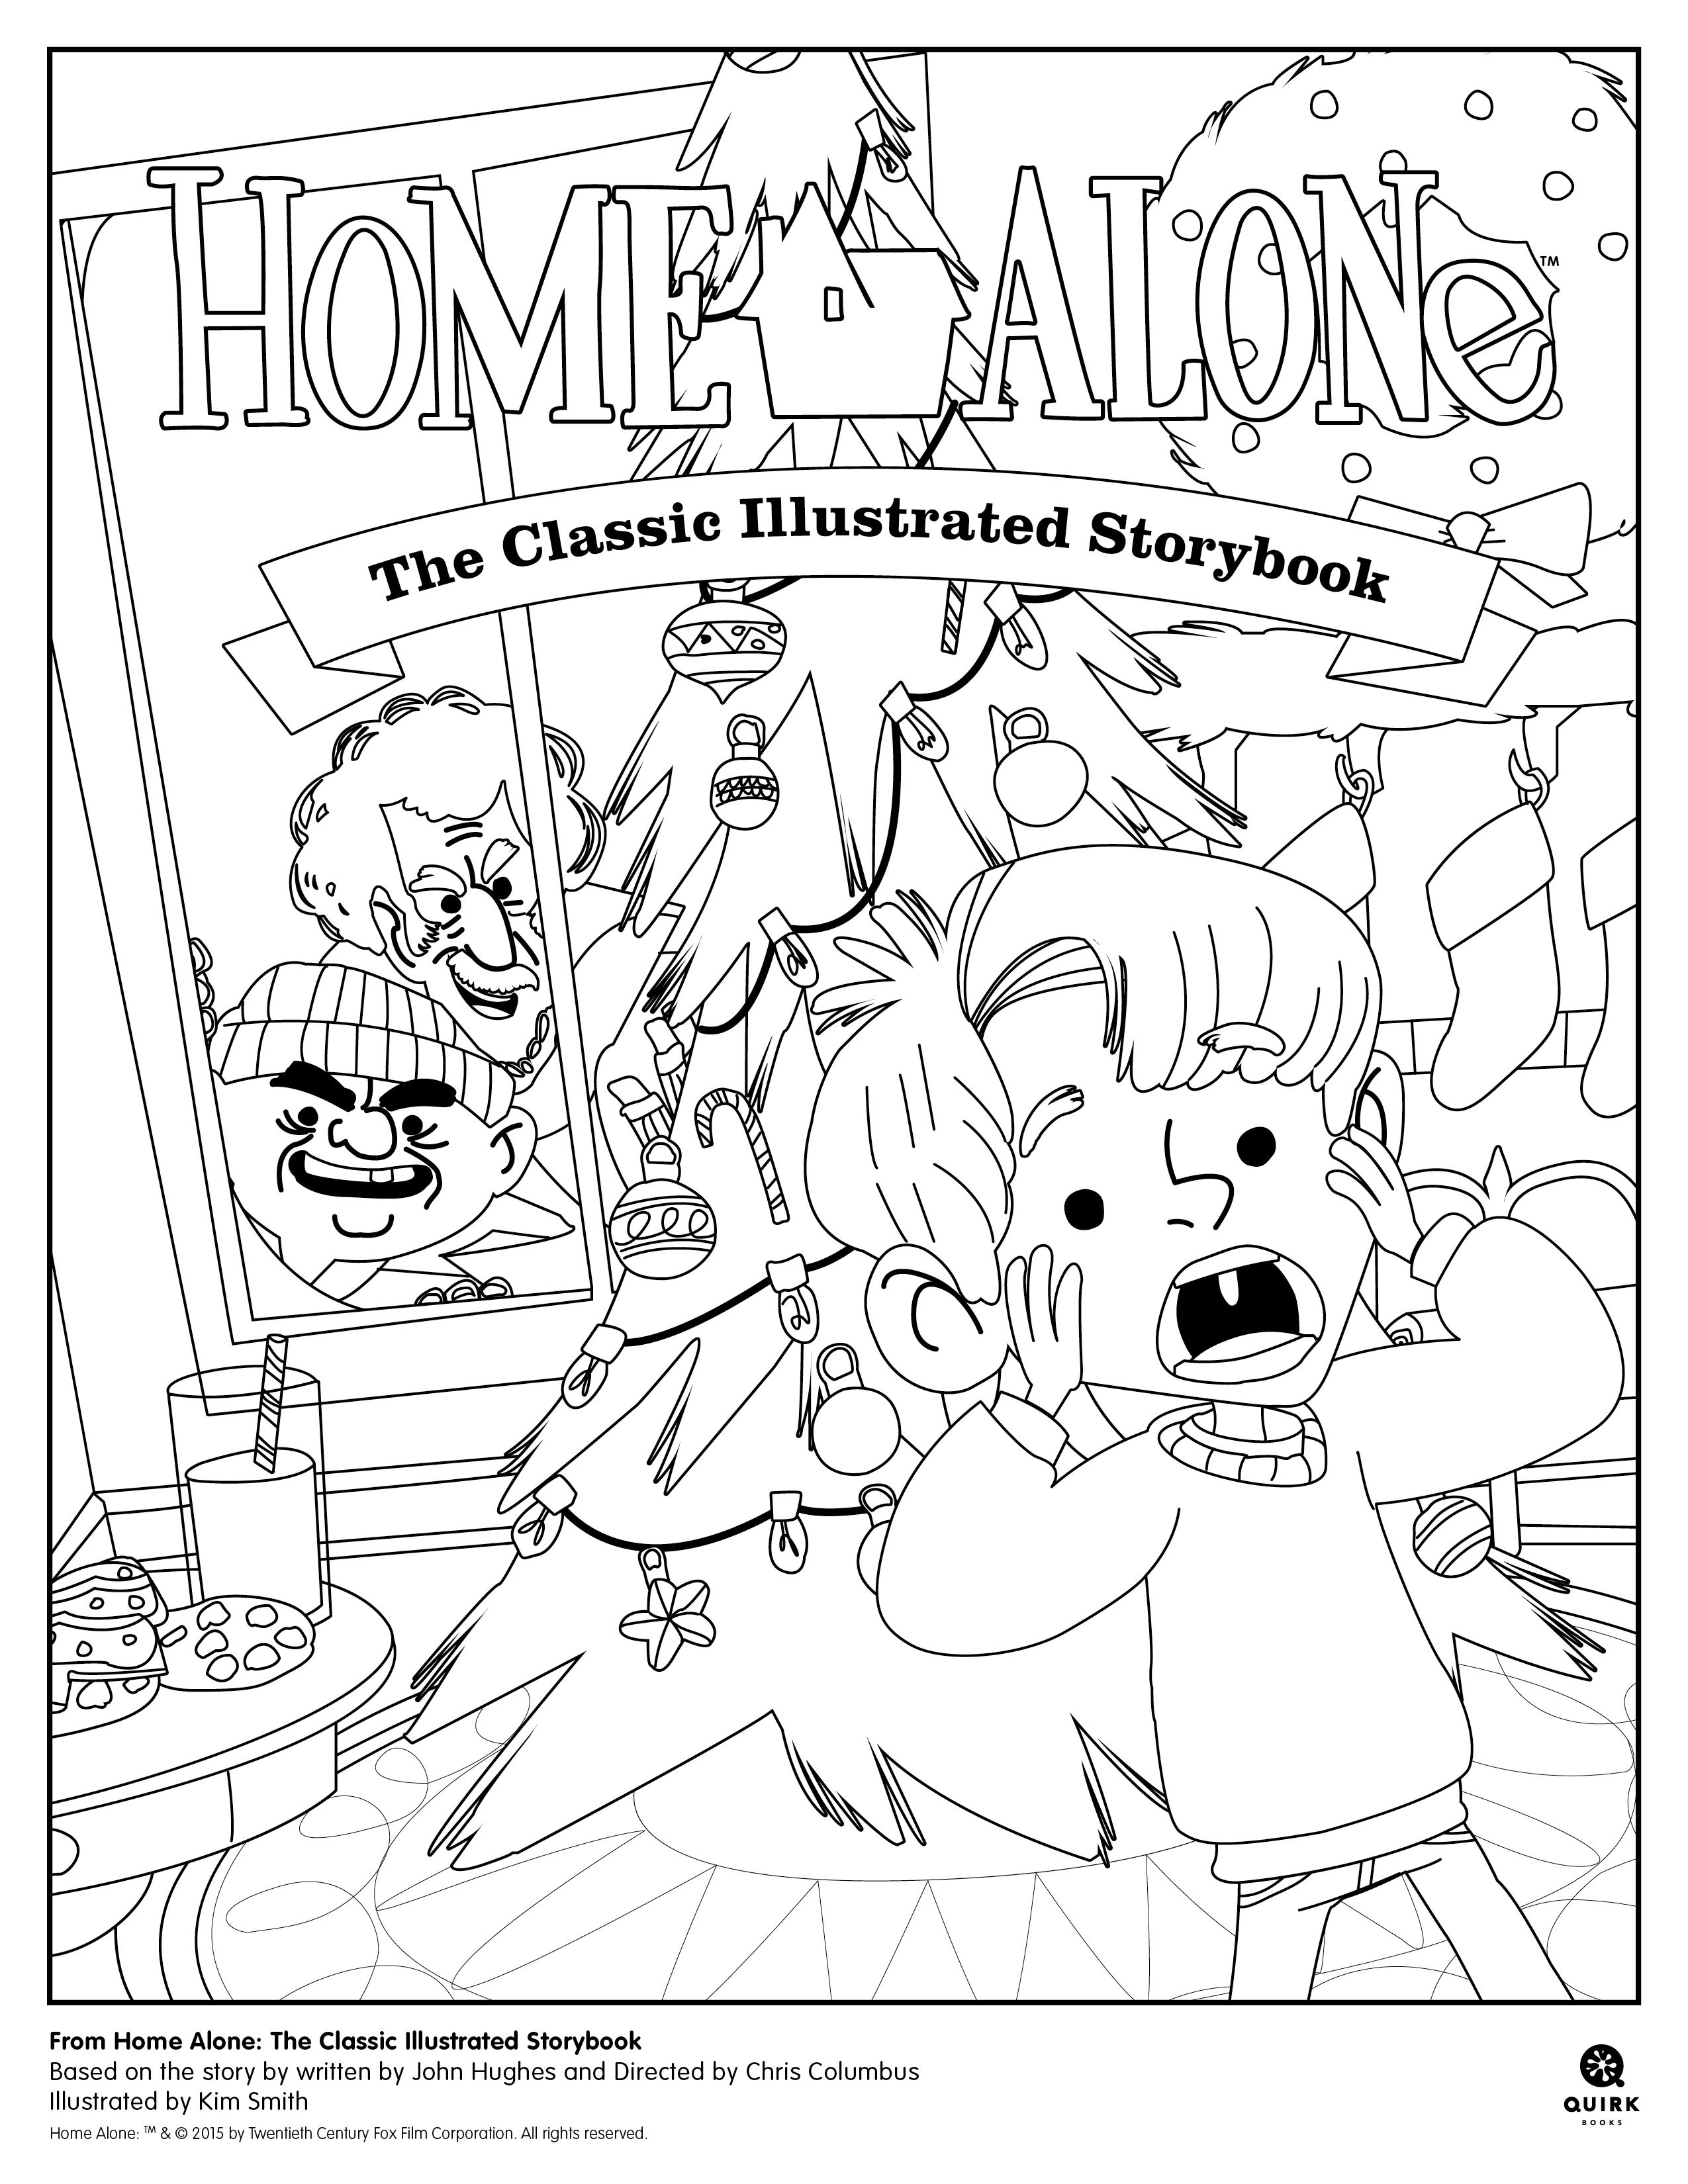 Coloring Page From Home Alone The Classic Illustrated